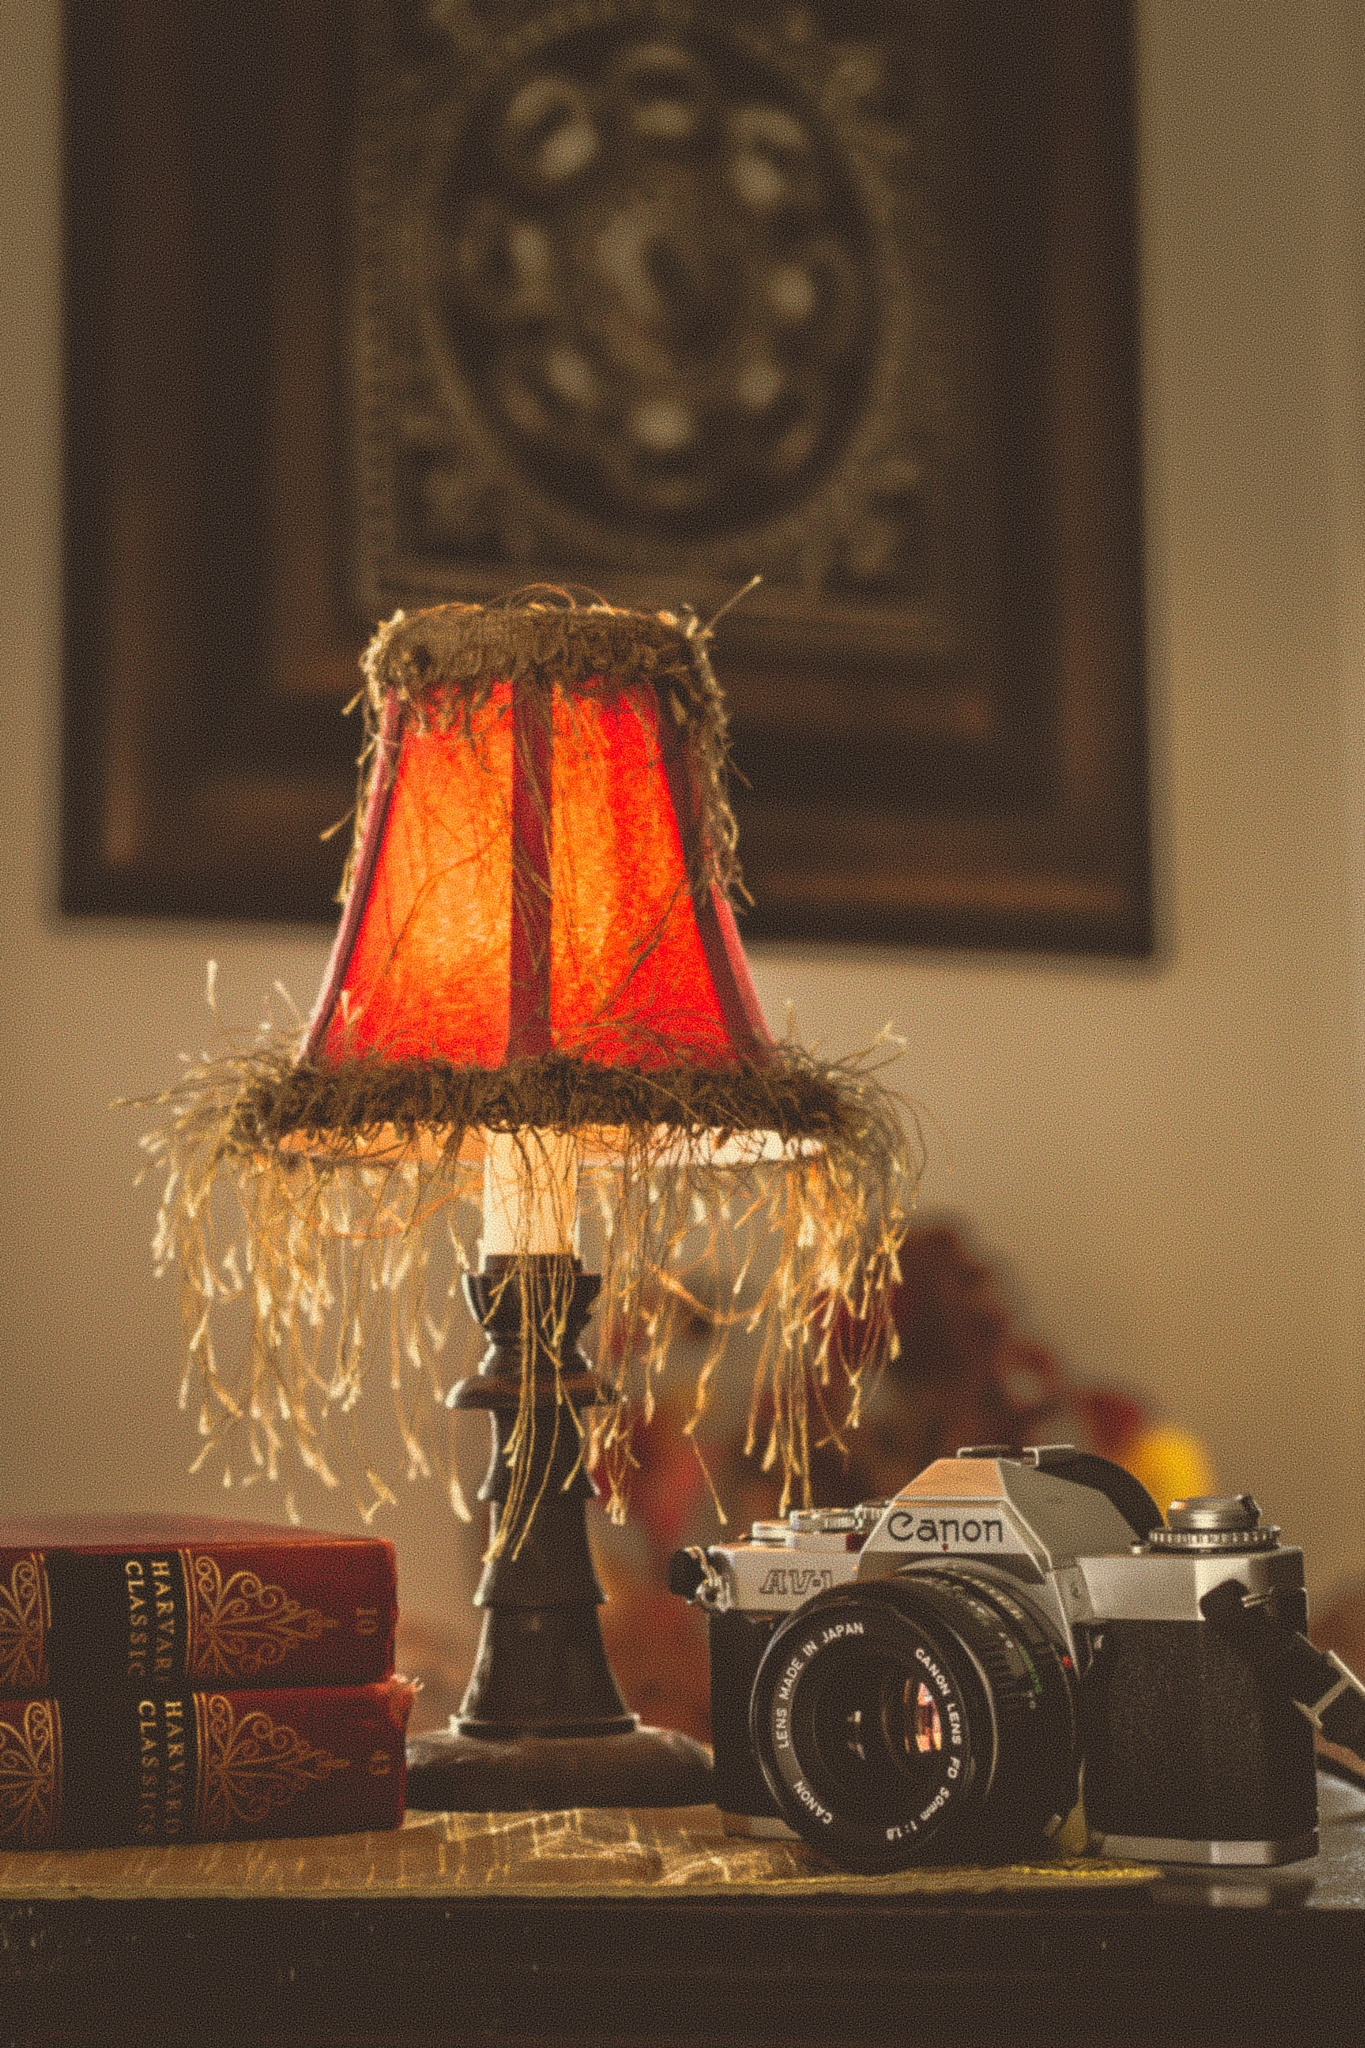 Camera and Lamp by Paris B. Photography